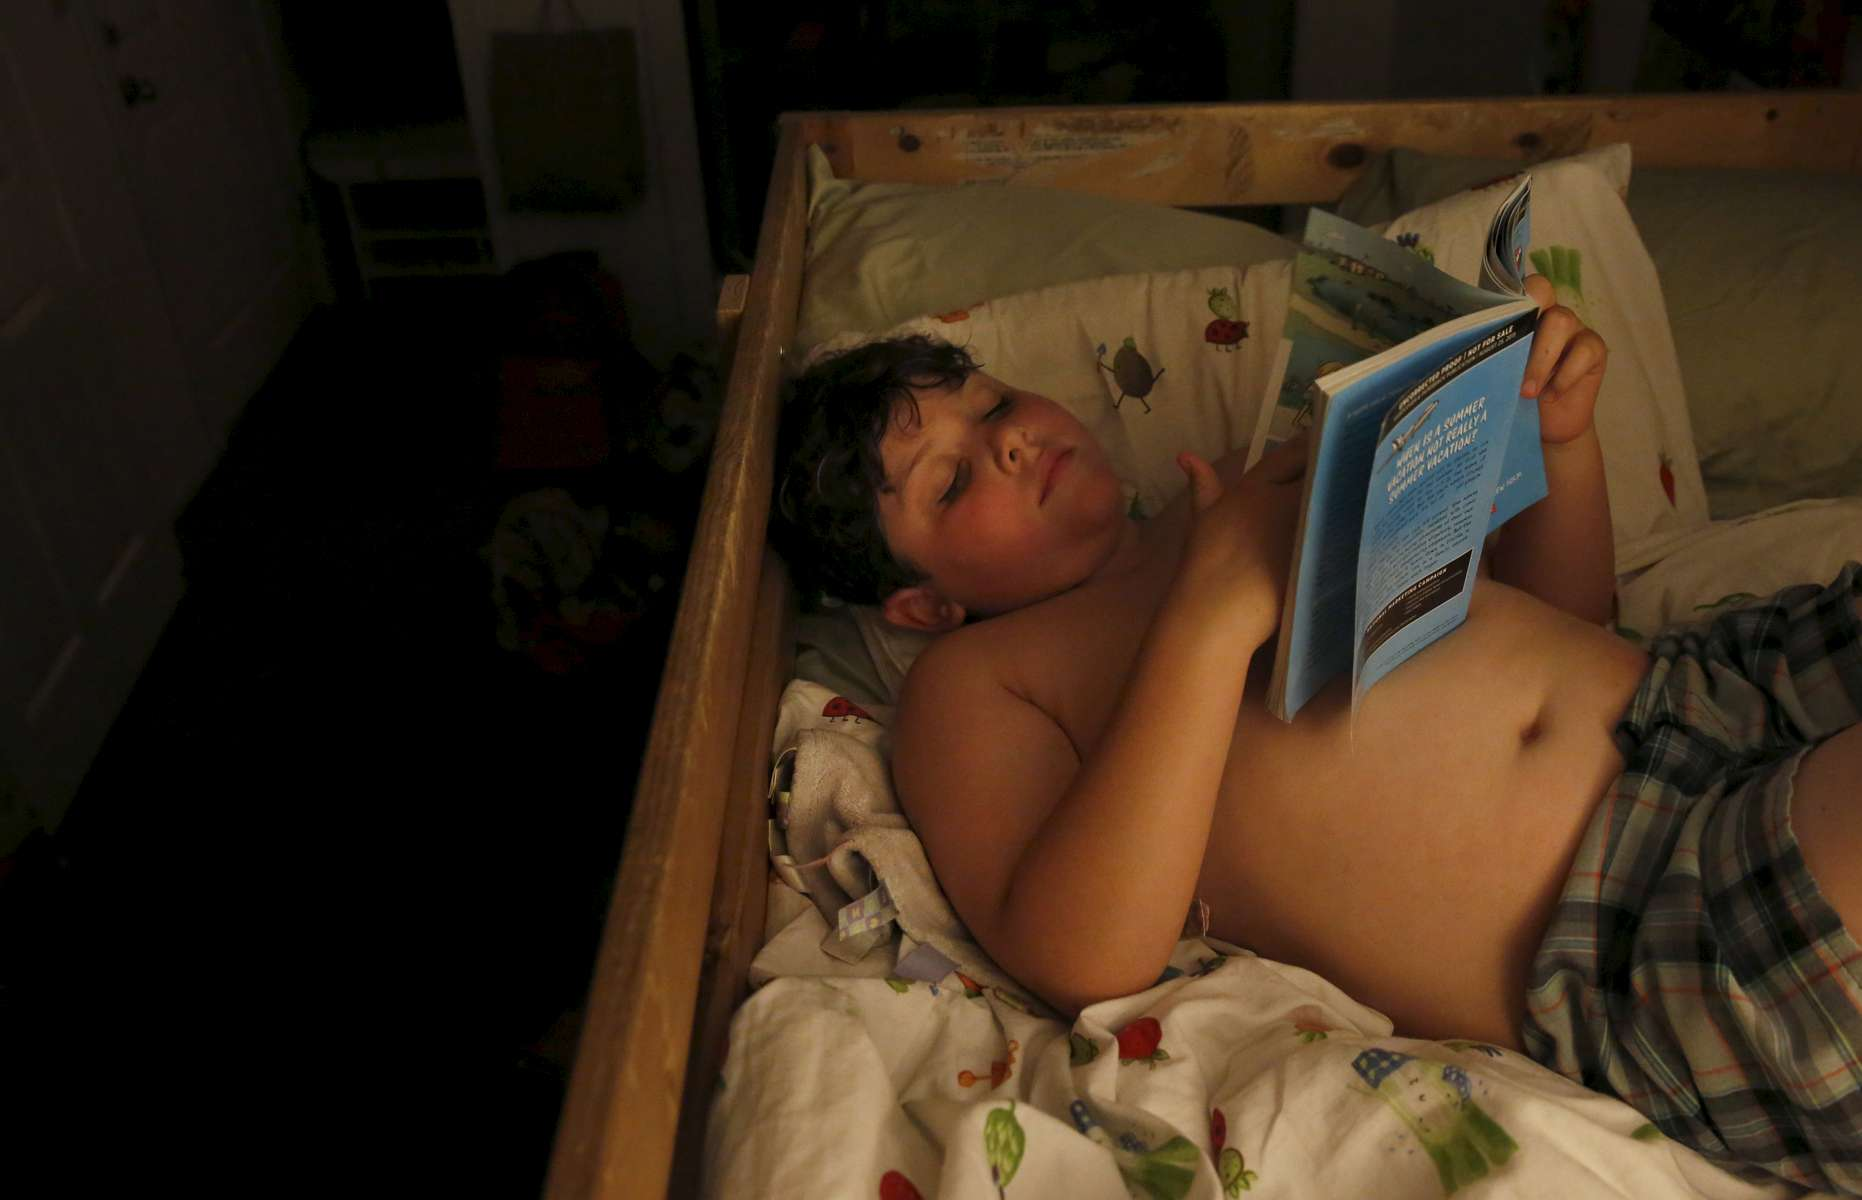 James Kaplan, 8, reads a book for a few minutes before going to sleep Oct. 13, 2016 in Berkeley, Calif. James' father Ben says that right after he transitioned, James became very interested in all of the stereotypical {quote}boy stuff{quote} like batman and comic books. It wasn't until his parents told him it was OK to still like some of the stereotypical {quote}girl things{quote} he still liked from before, like his dolls, that he seemed to level out and feel comfortable having hobbies based on what he liked and not gender stereotypes.